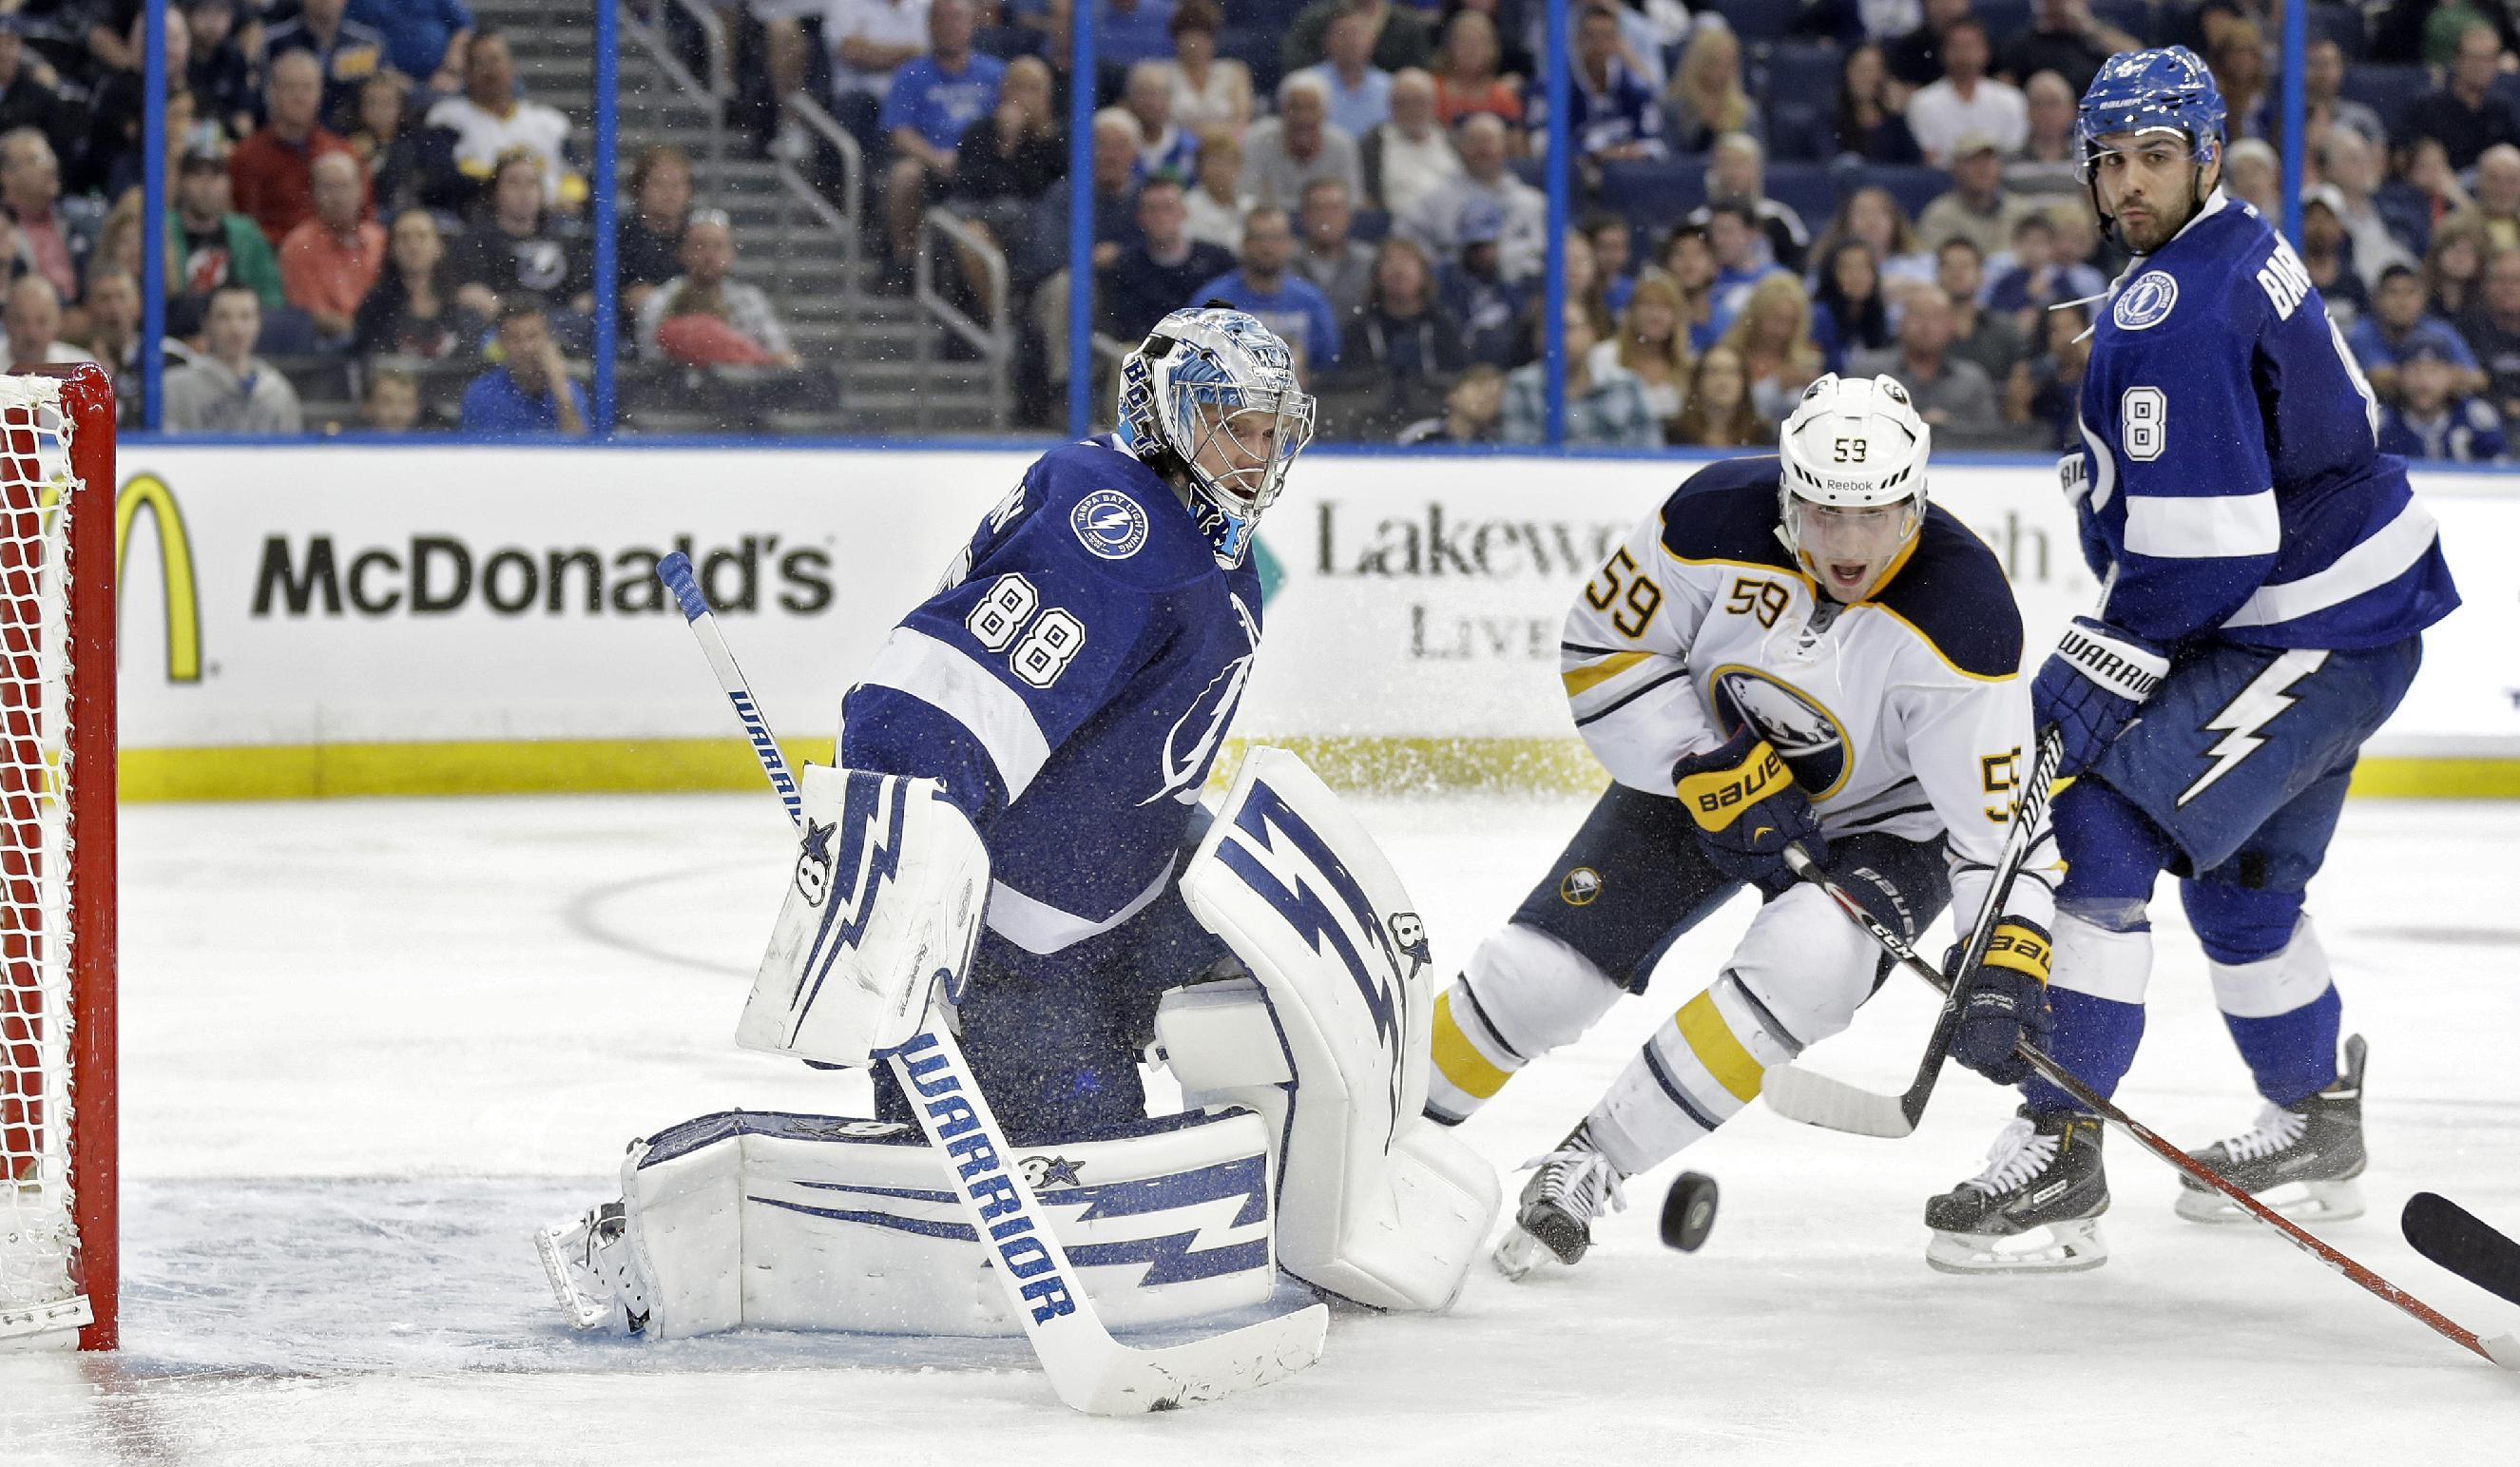 Lightning rookie Vasilevskiy earns 1st NHL shutout